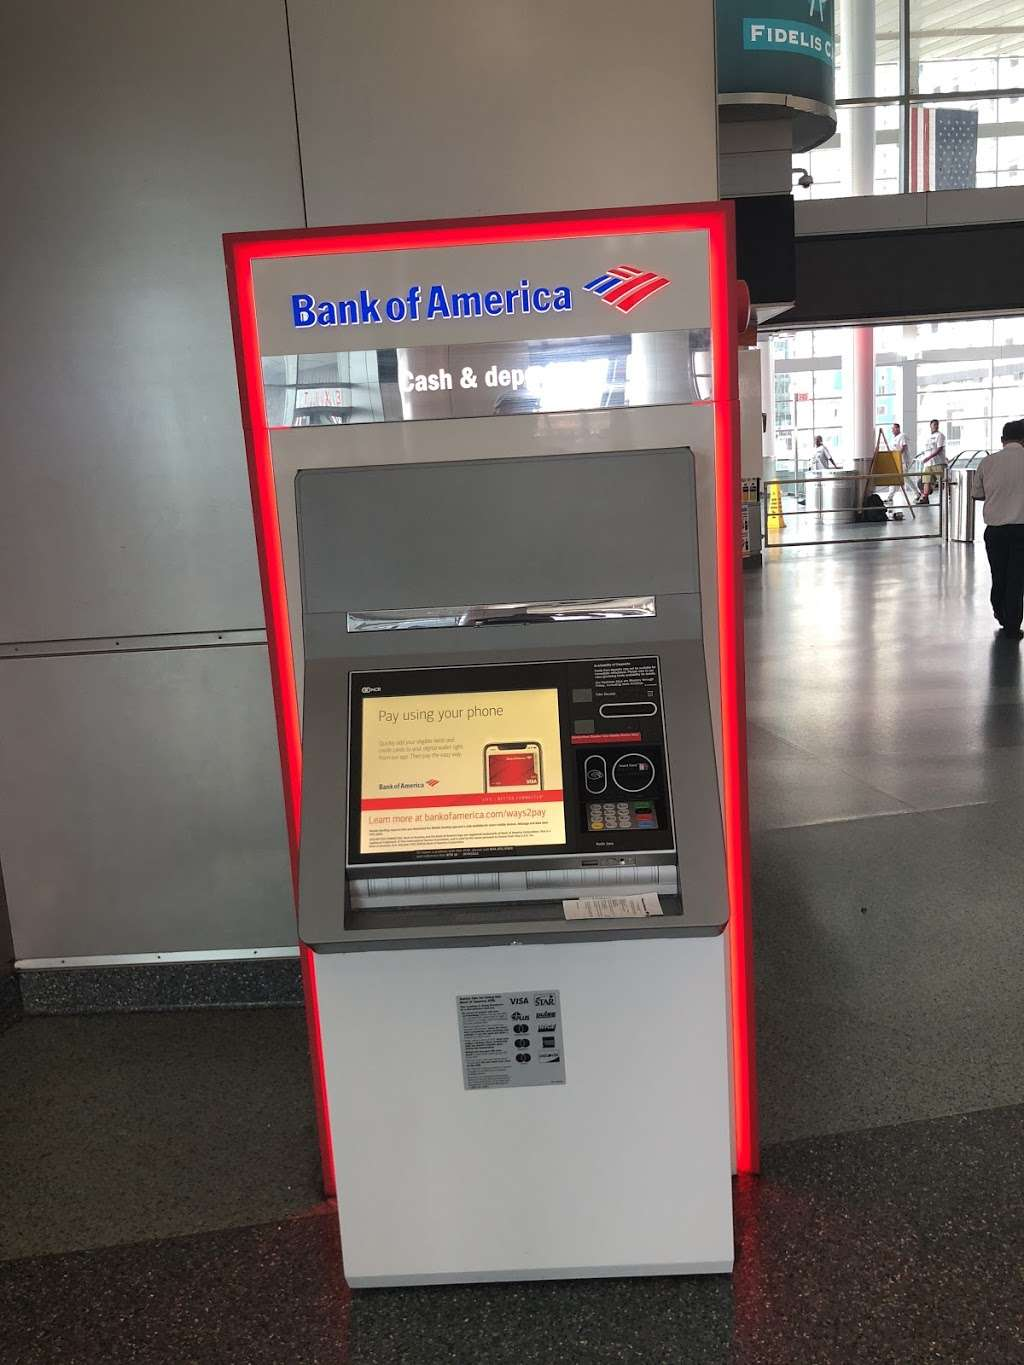 Bank of America ATM - atm  | Photo 3 of 3 | Address: 4 South St, New York, NY 10004, USA | Phone: (800) 622-8731